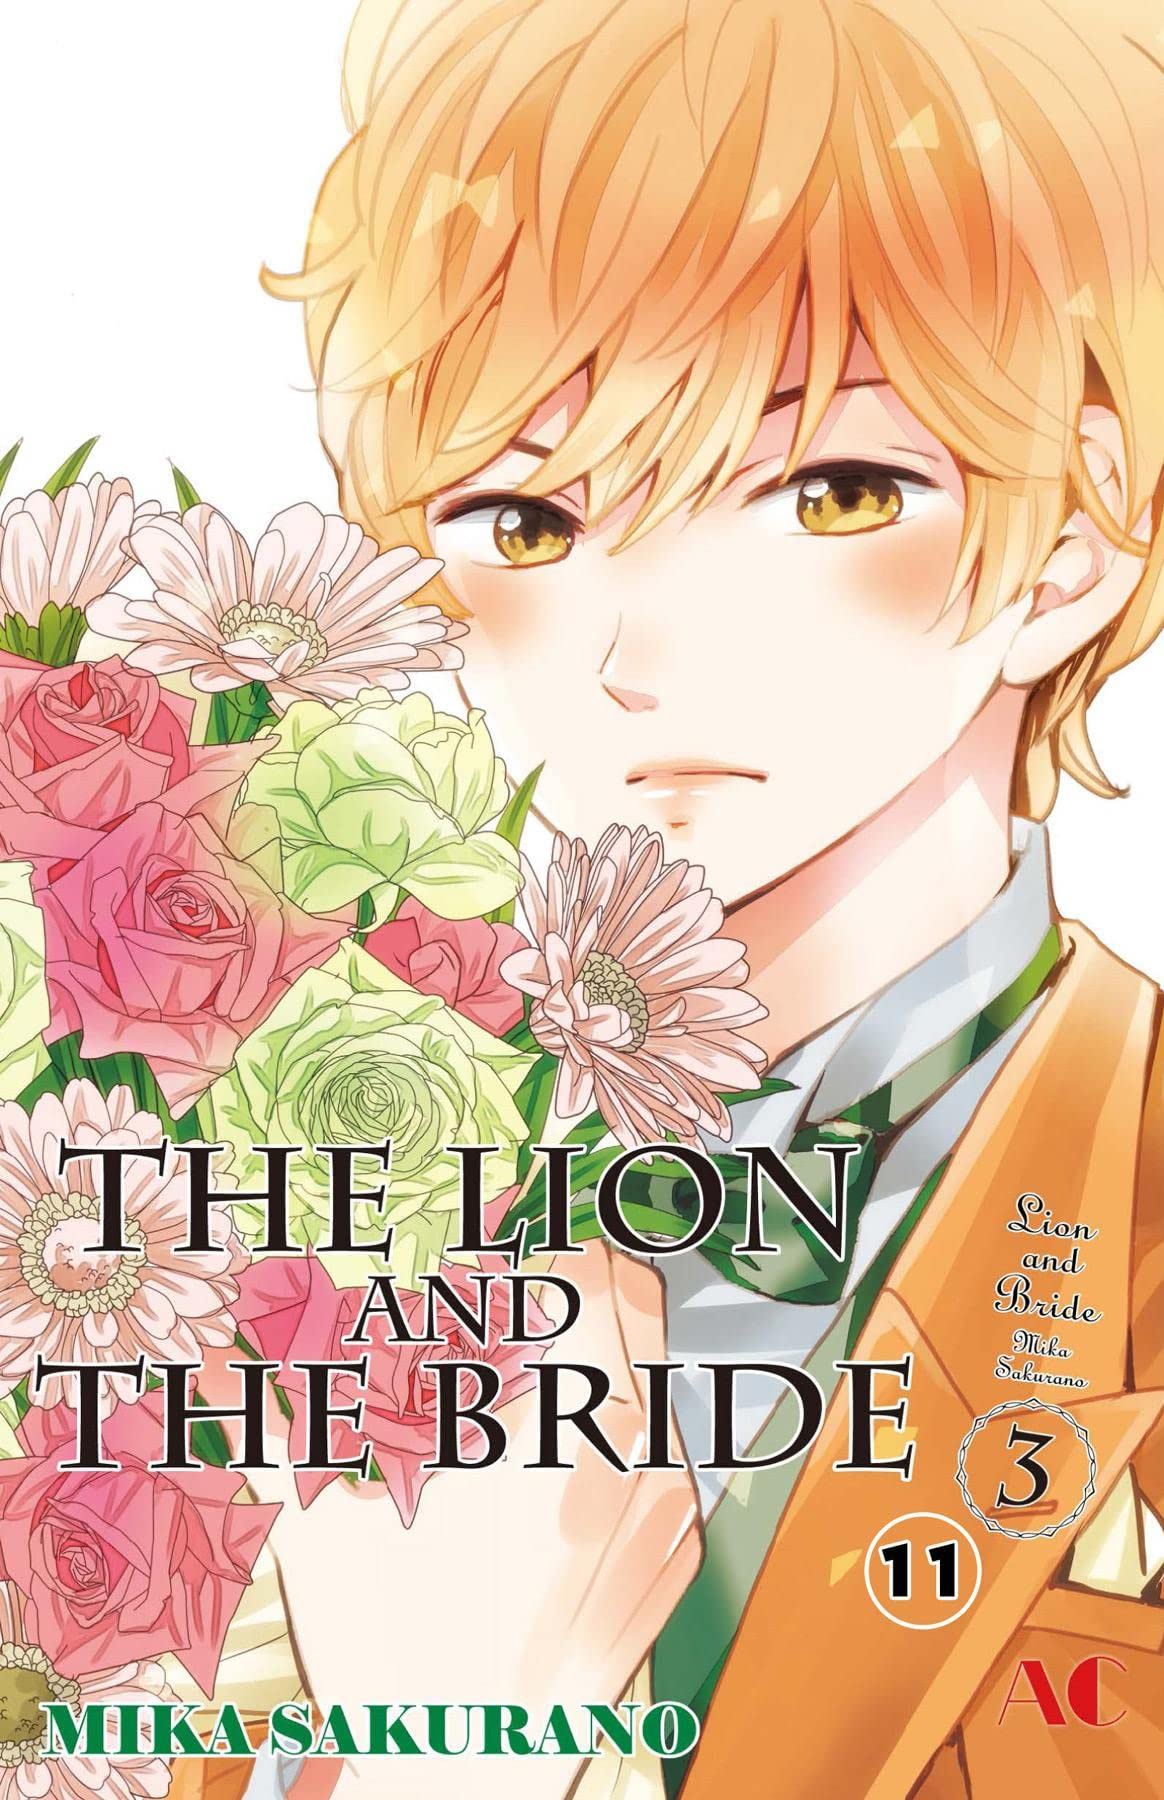 The Lion and the Bride #11